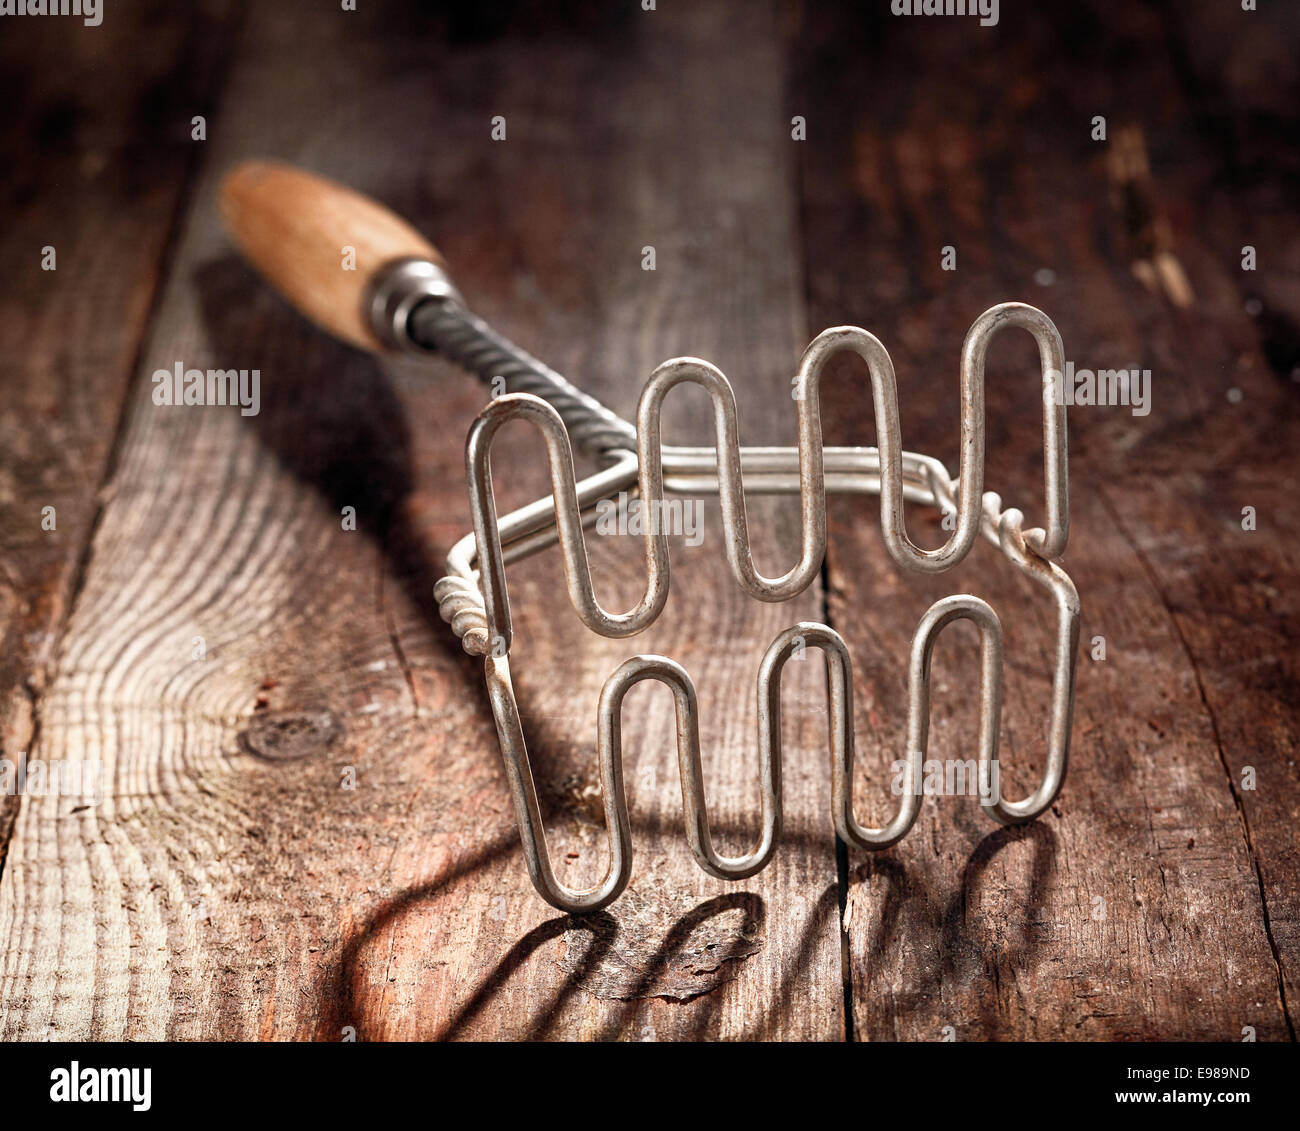 Old wood and metal potato masher on a textured wooden surface with shallow dof and focus to the steel wire grid - Stock Image